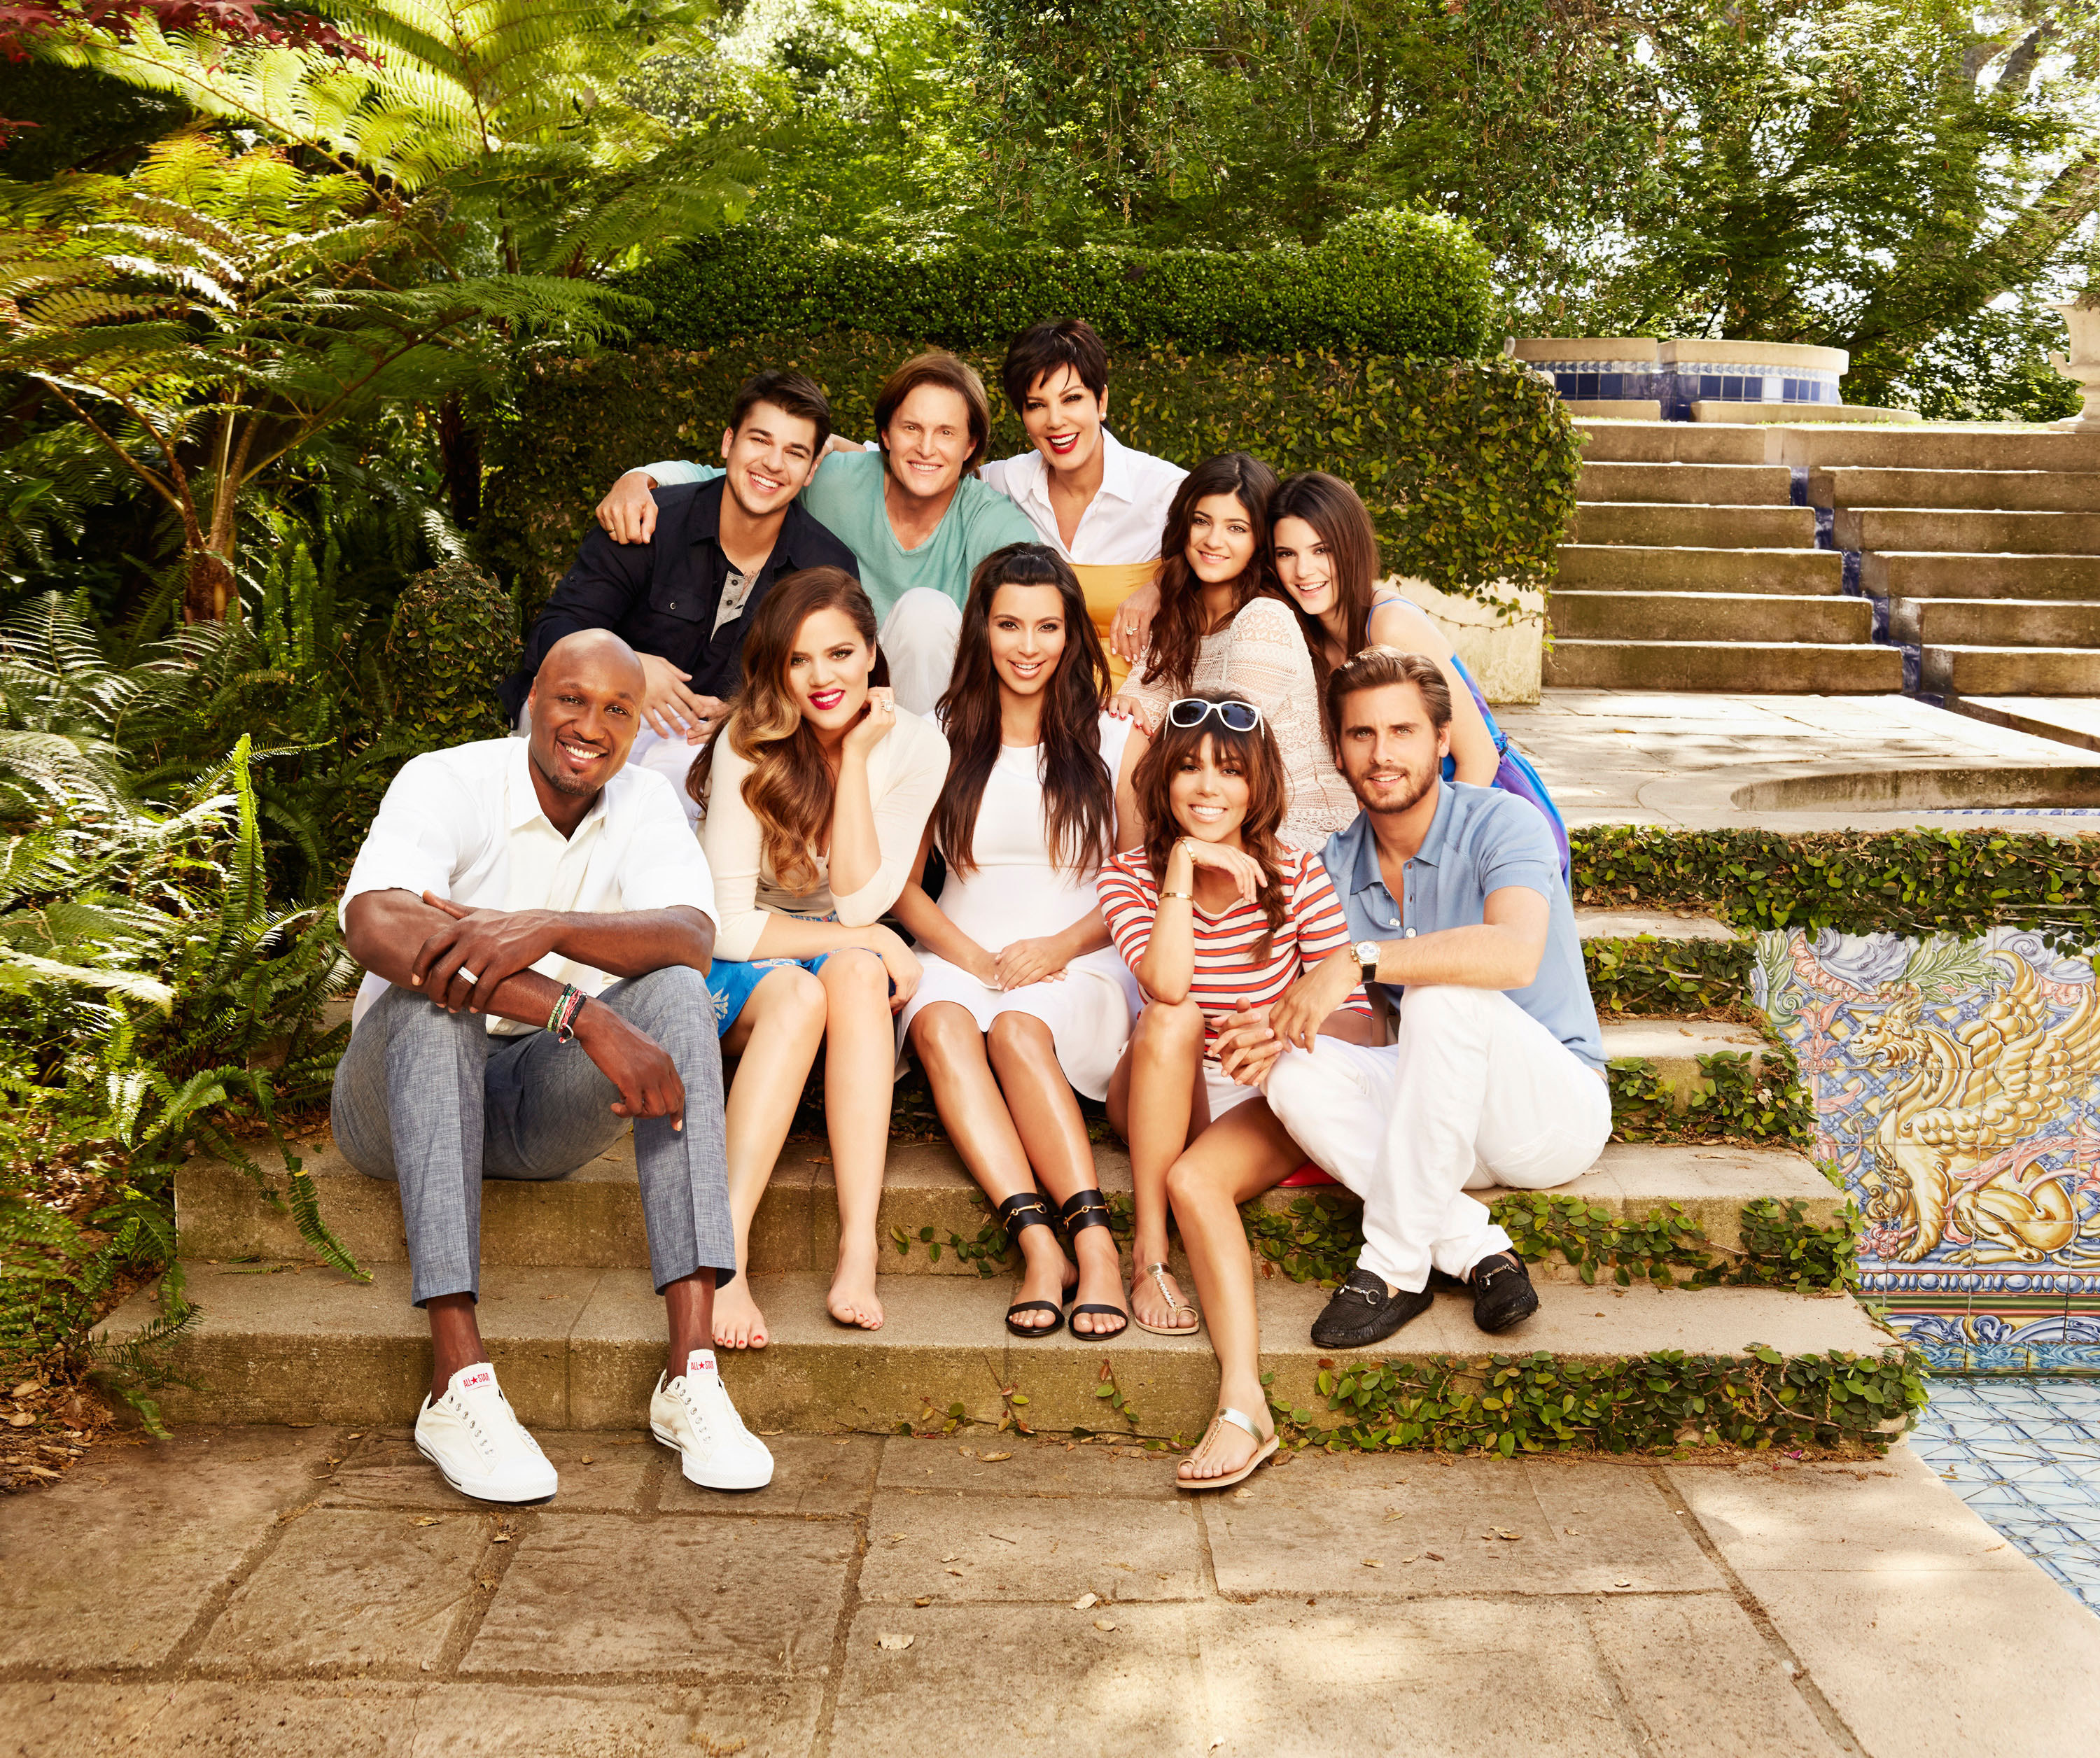 The whole Kardashian-Jenner clan huddles together near a fountain for a photo